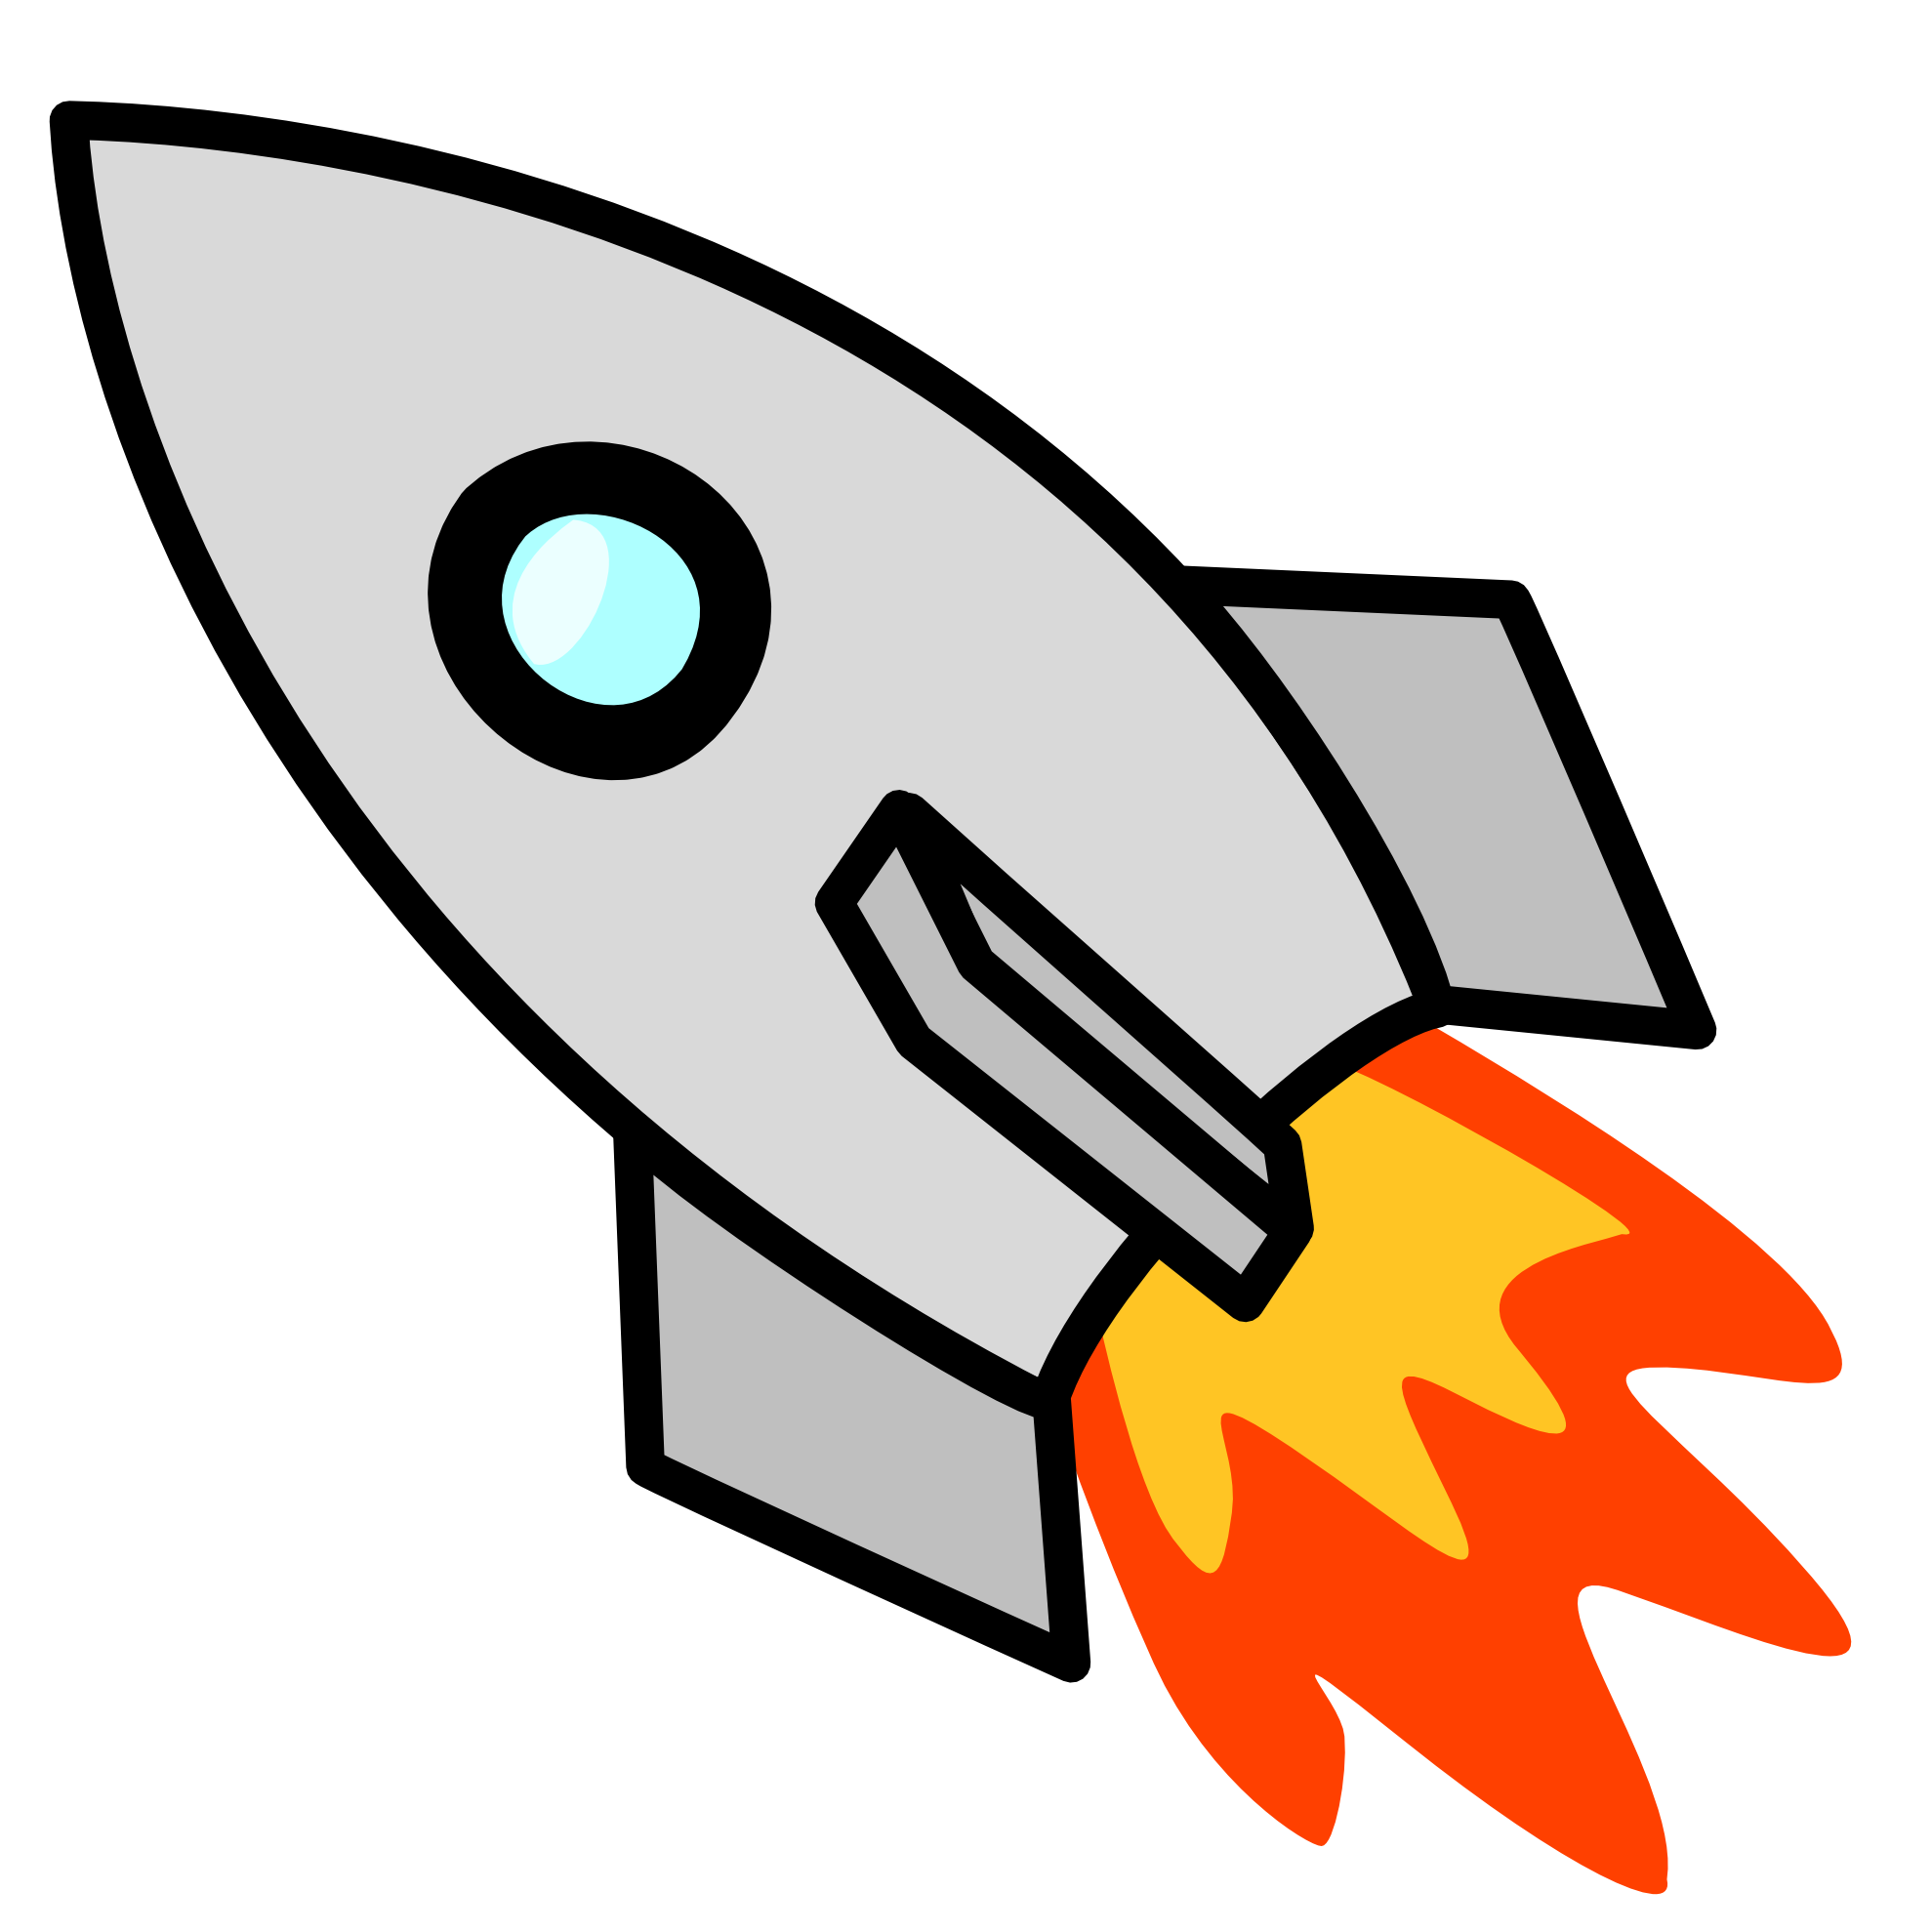 Spaceship clipart #17, Download drawings